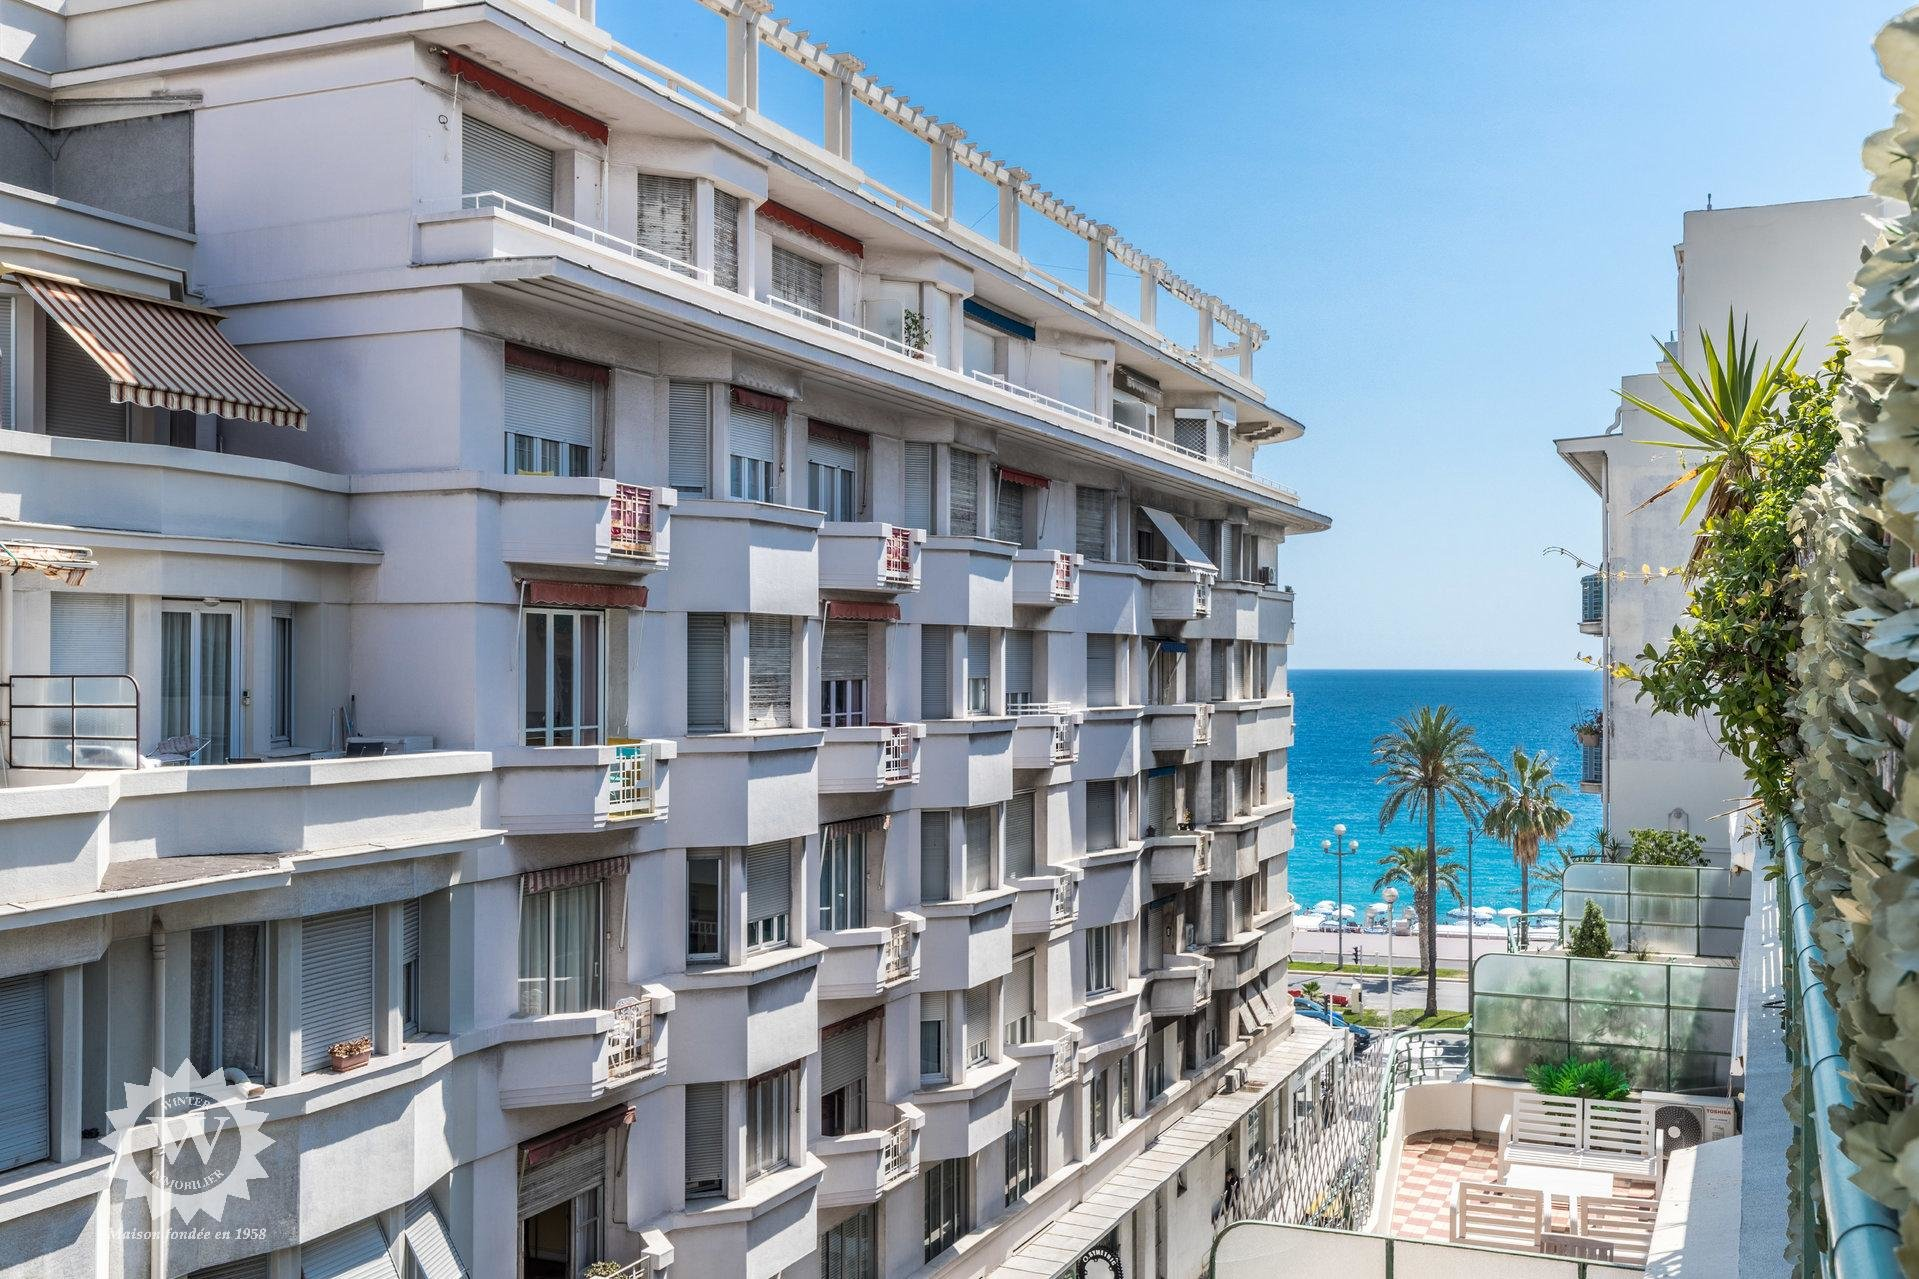 Capitole 3 Rooms Flat Sea, Hills and Park Viewss;